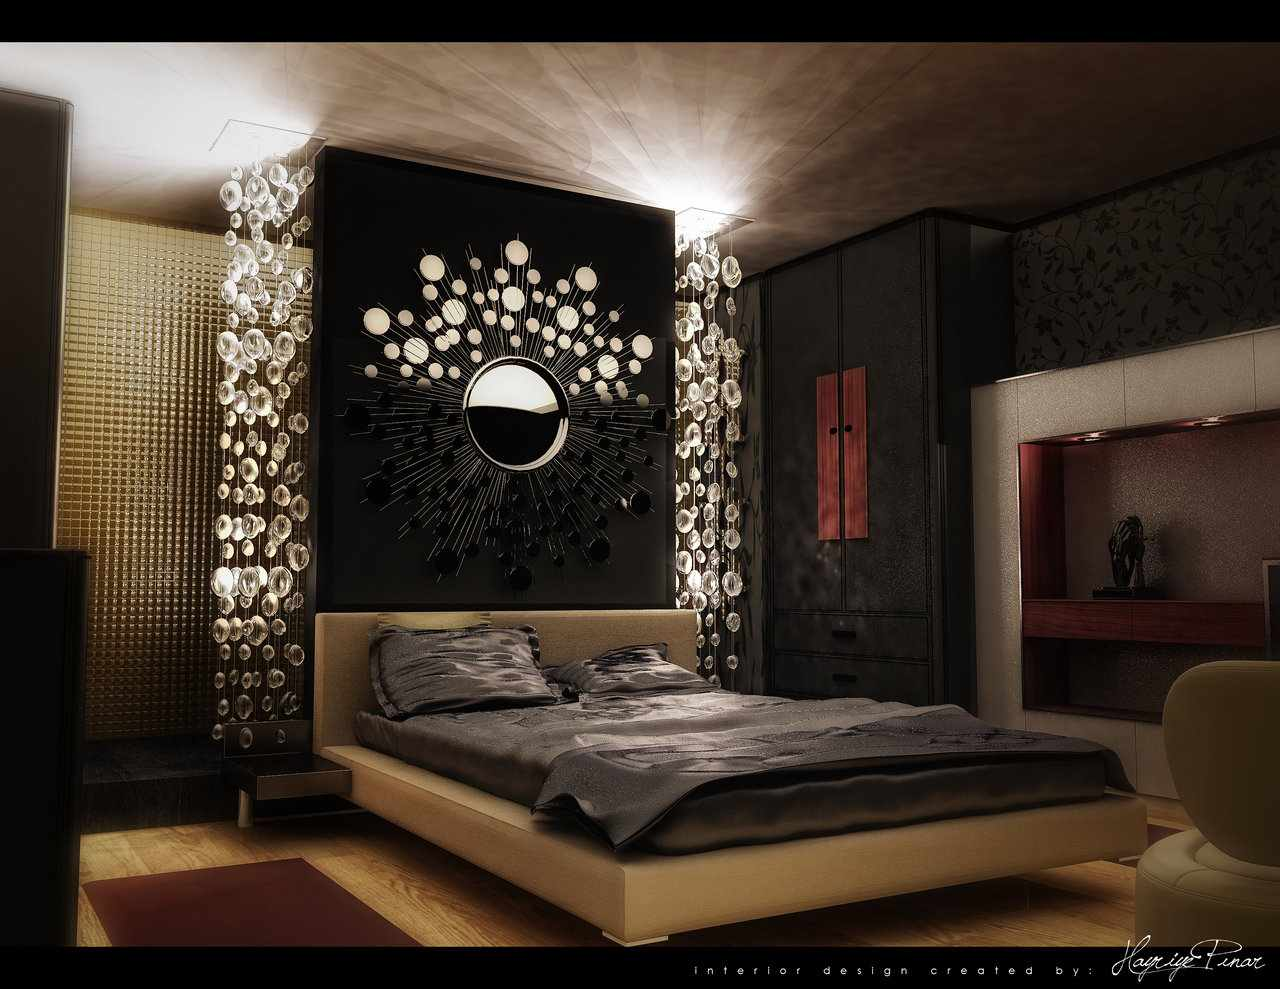 Ikea bedroom ideas ikea bedroom 2014 ideas for Room ideas for